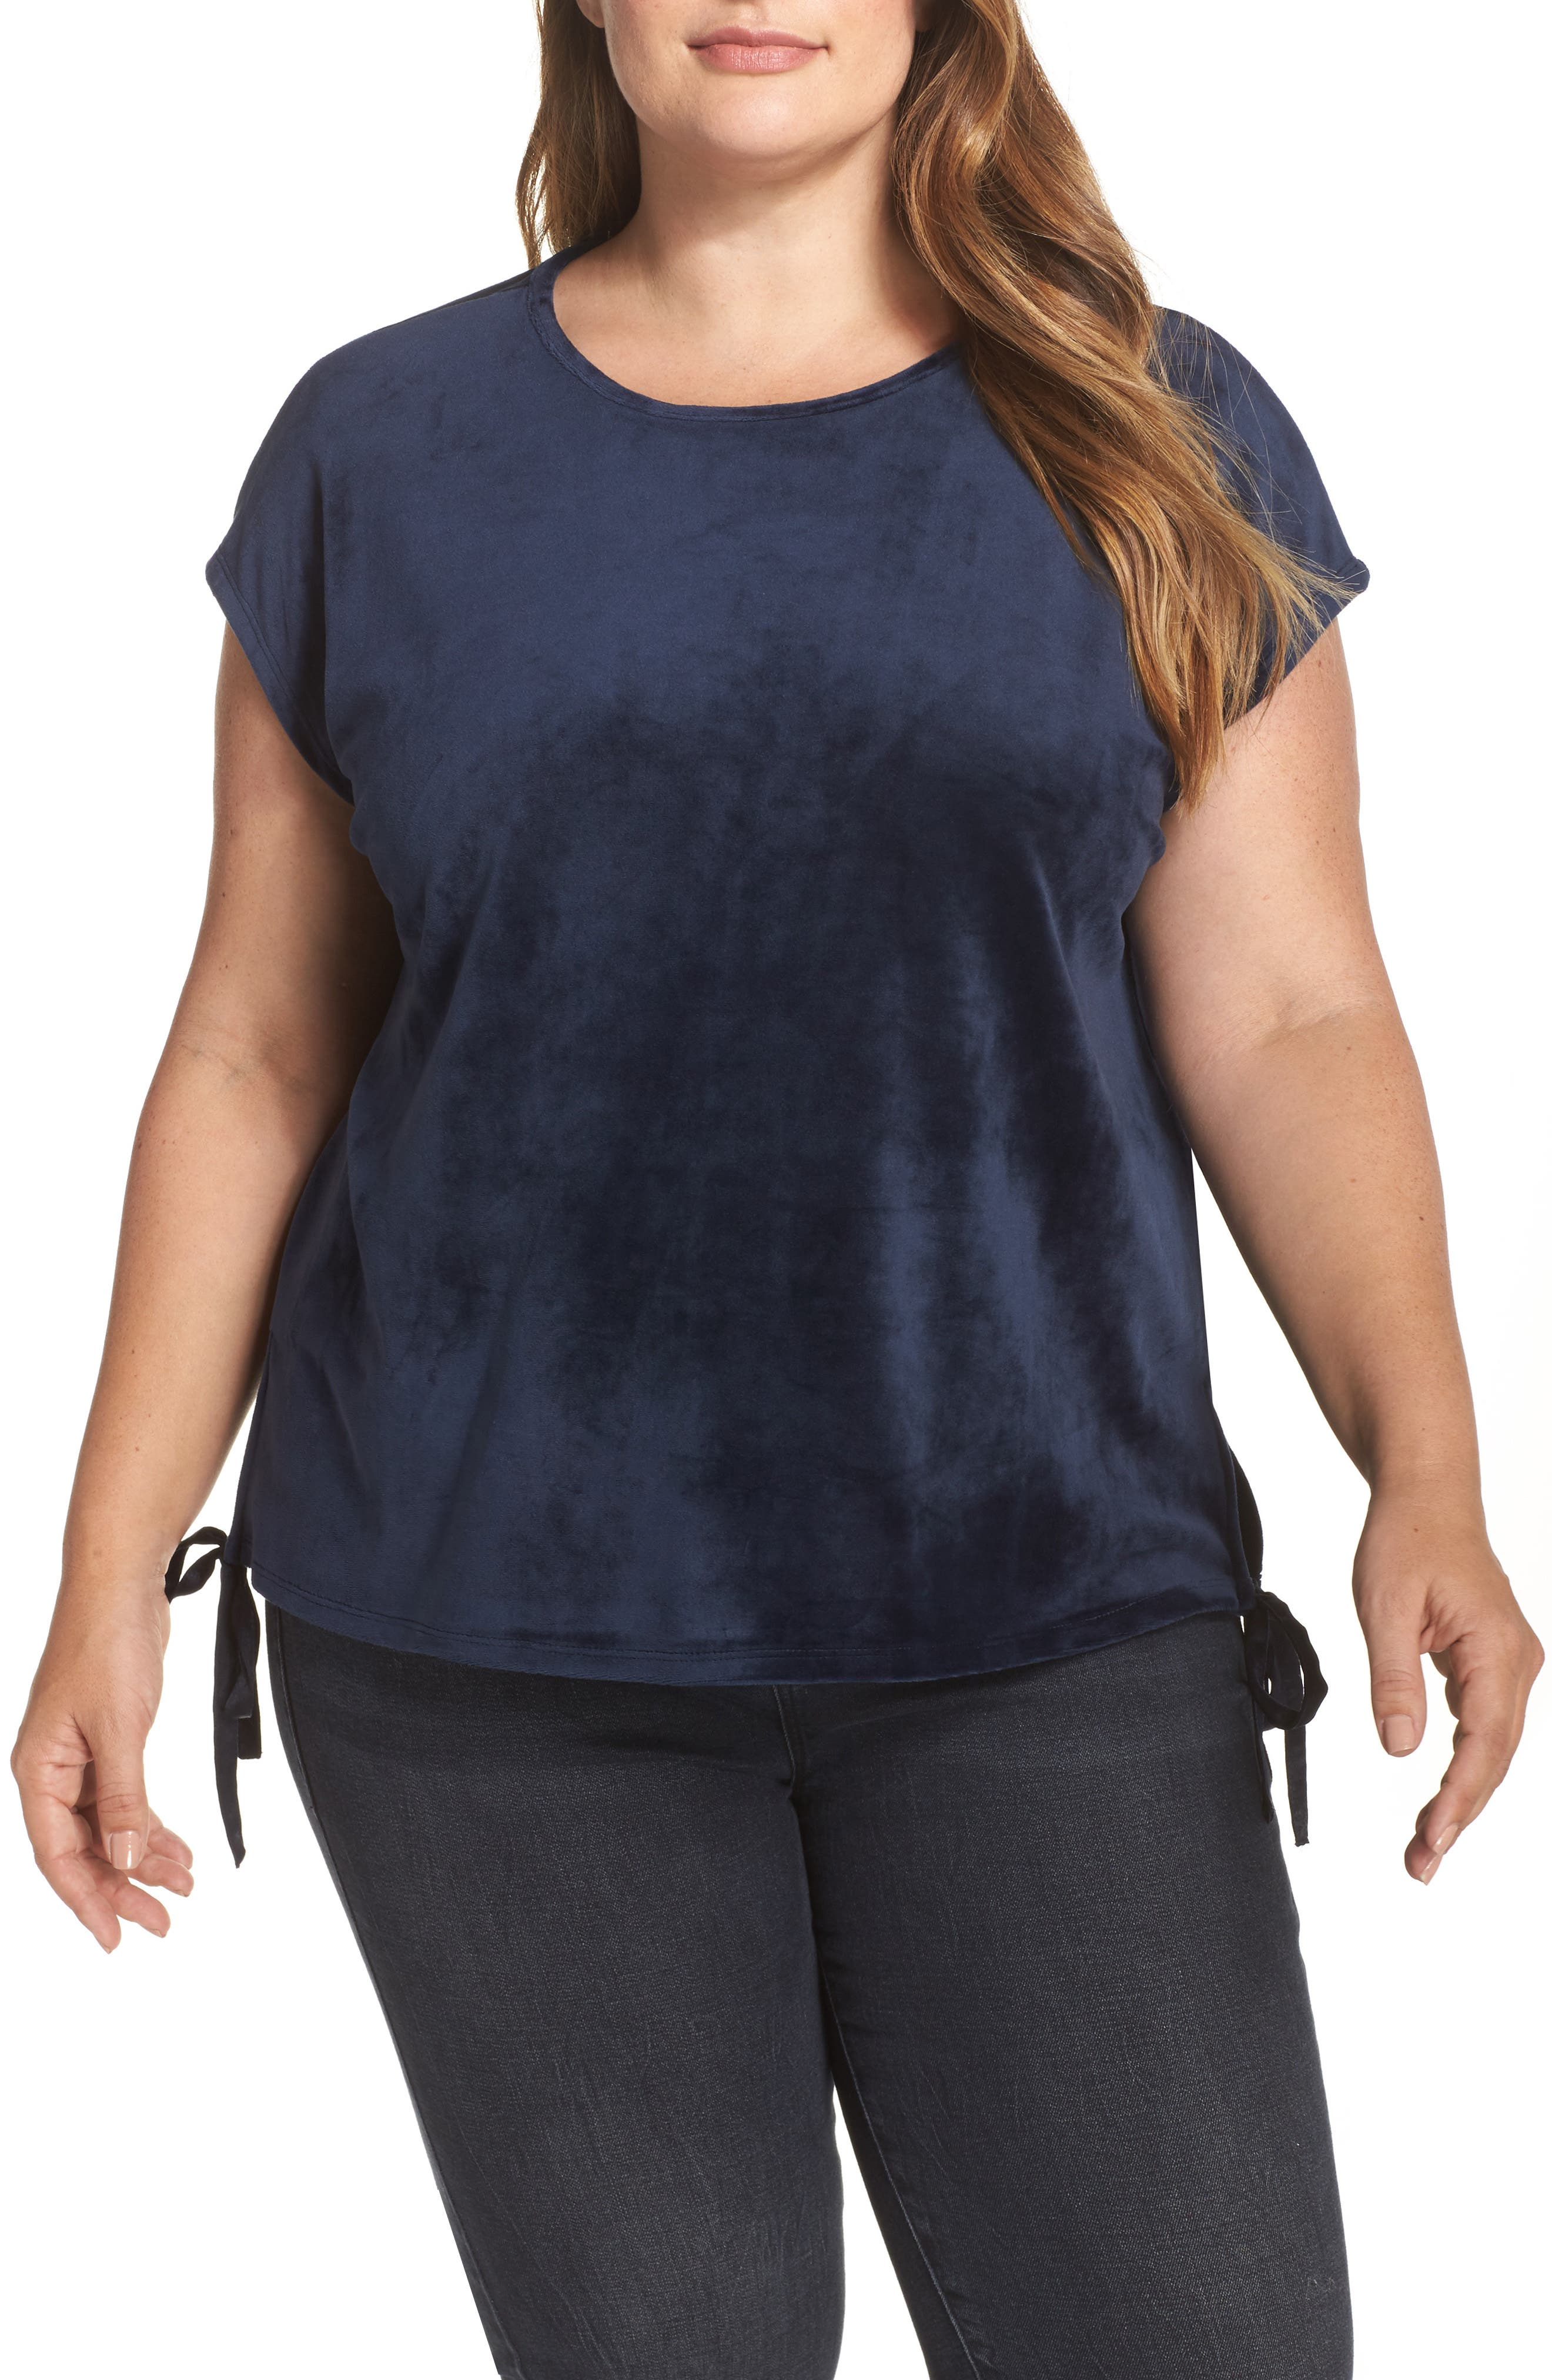 Main Image - Two by Vince Camuto Side Tie Velour Top (Plus Size)